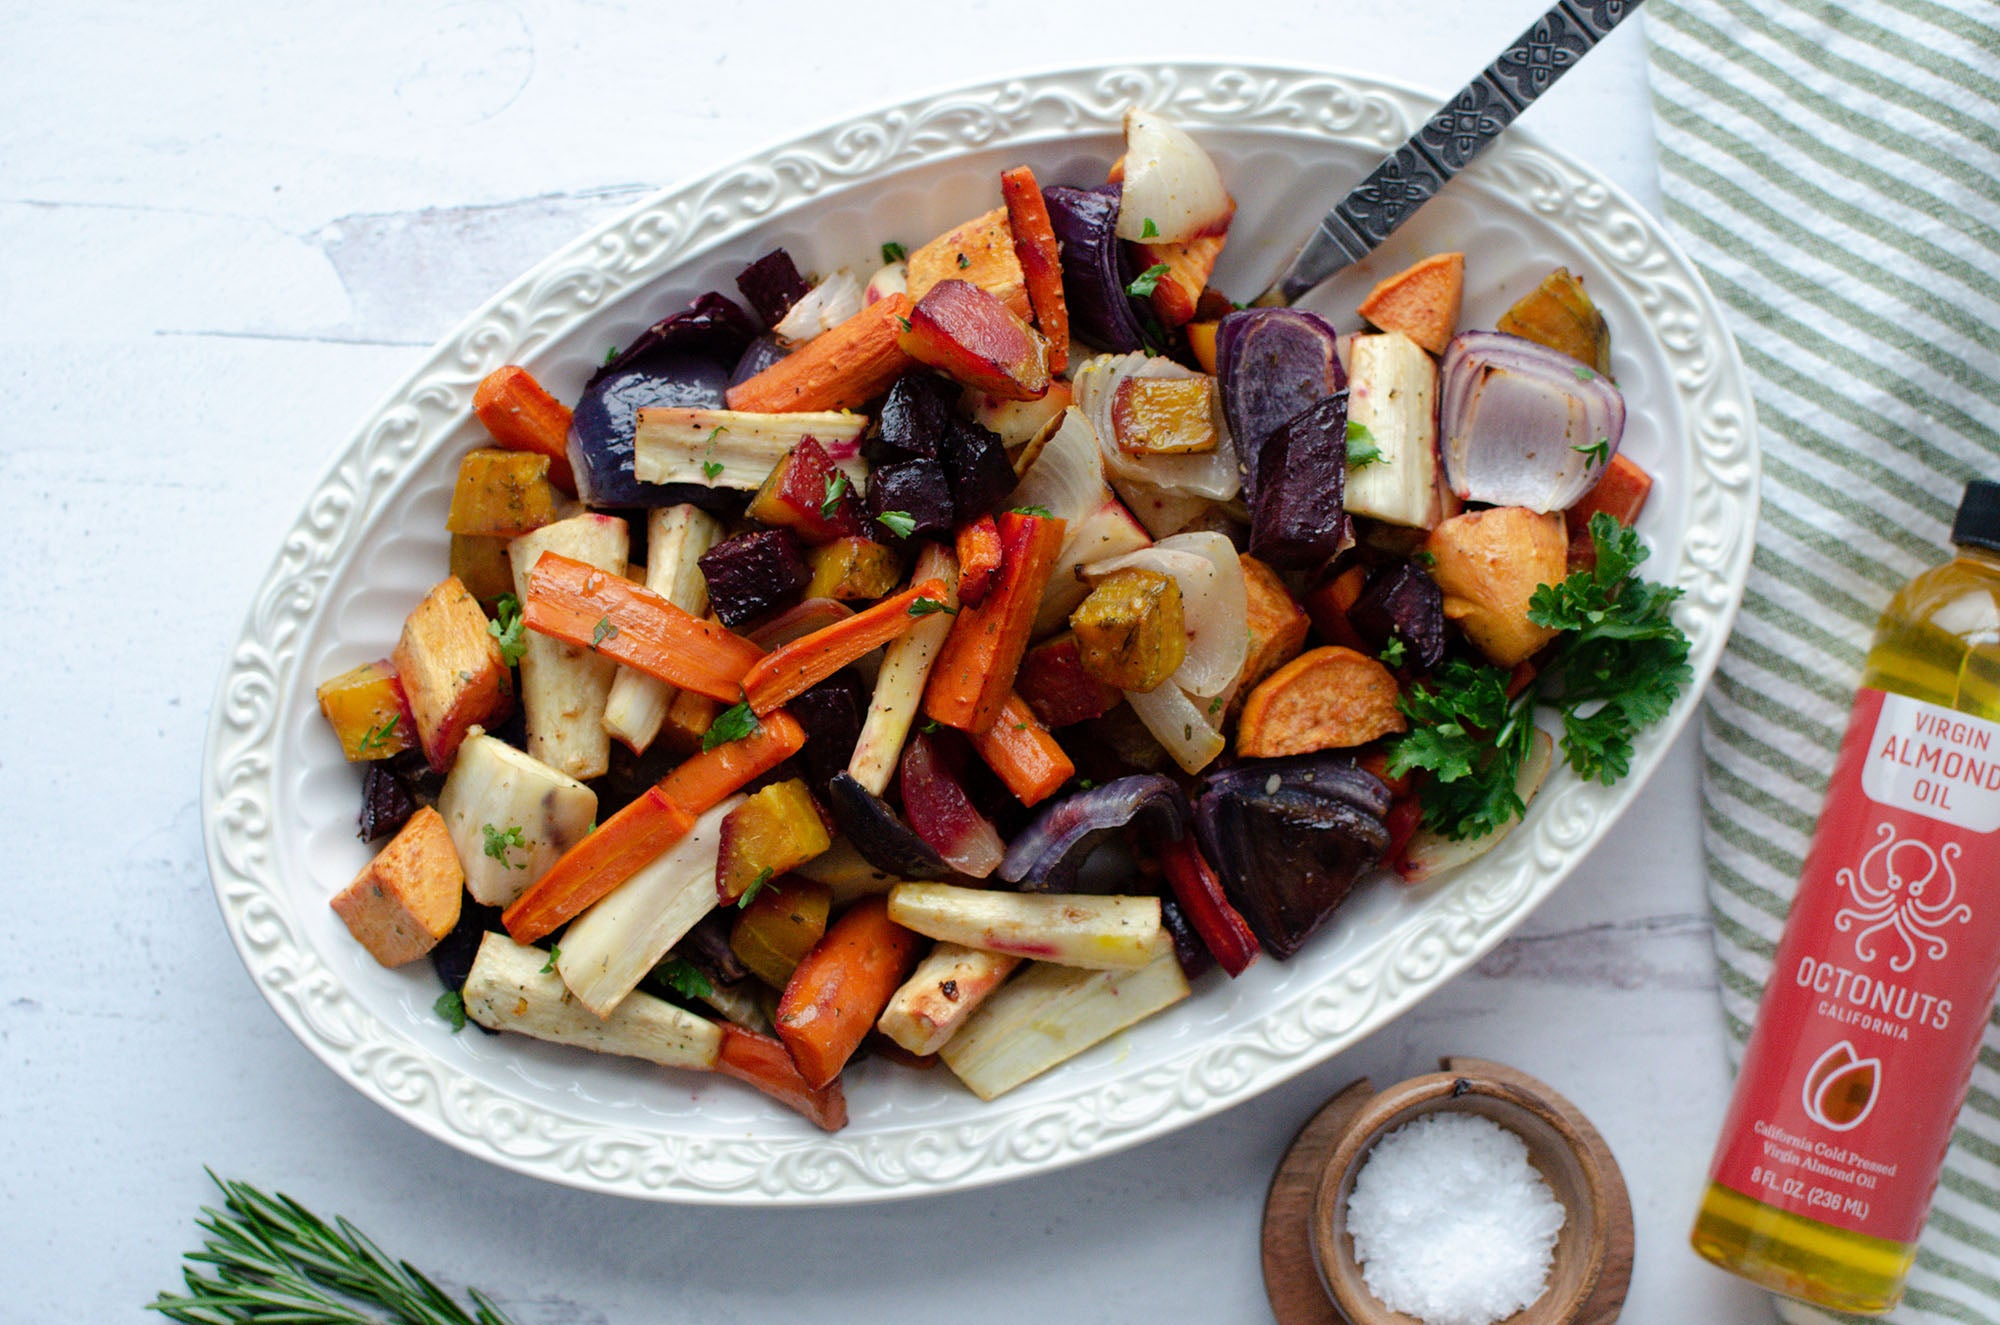 Roasted Root Vegetables featuring Octonuts Almond Oil